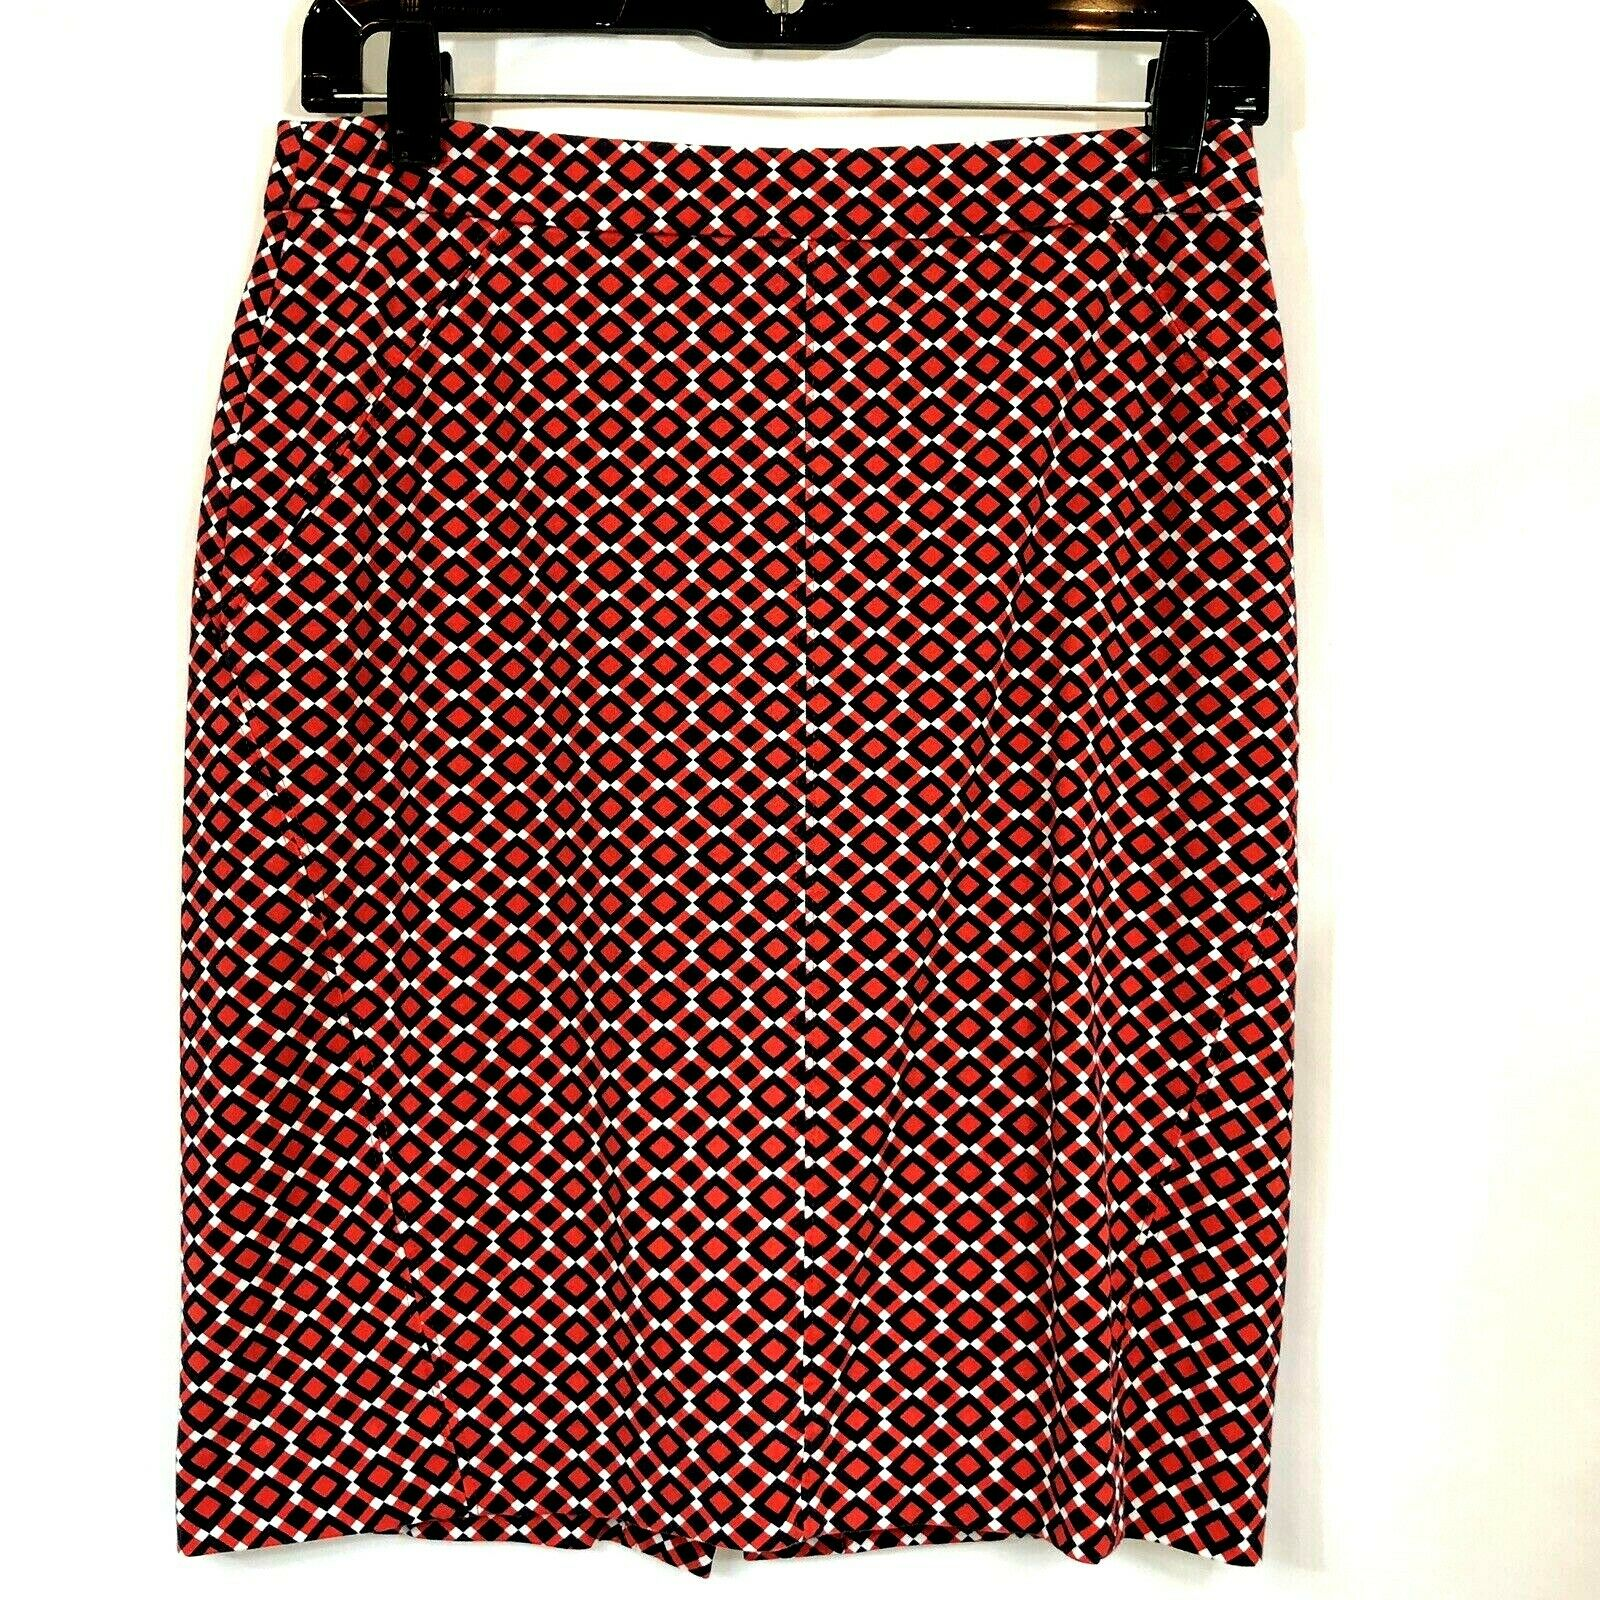 Ann Taylor Red and Navy Geometric Print Skirt Size 2p